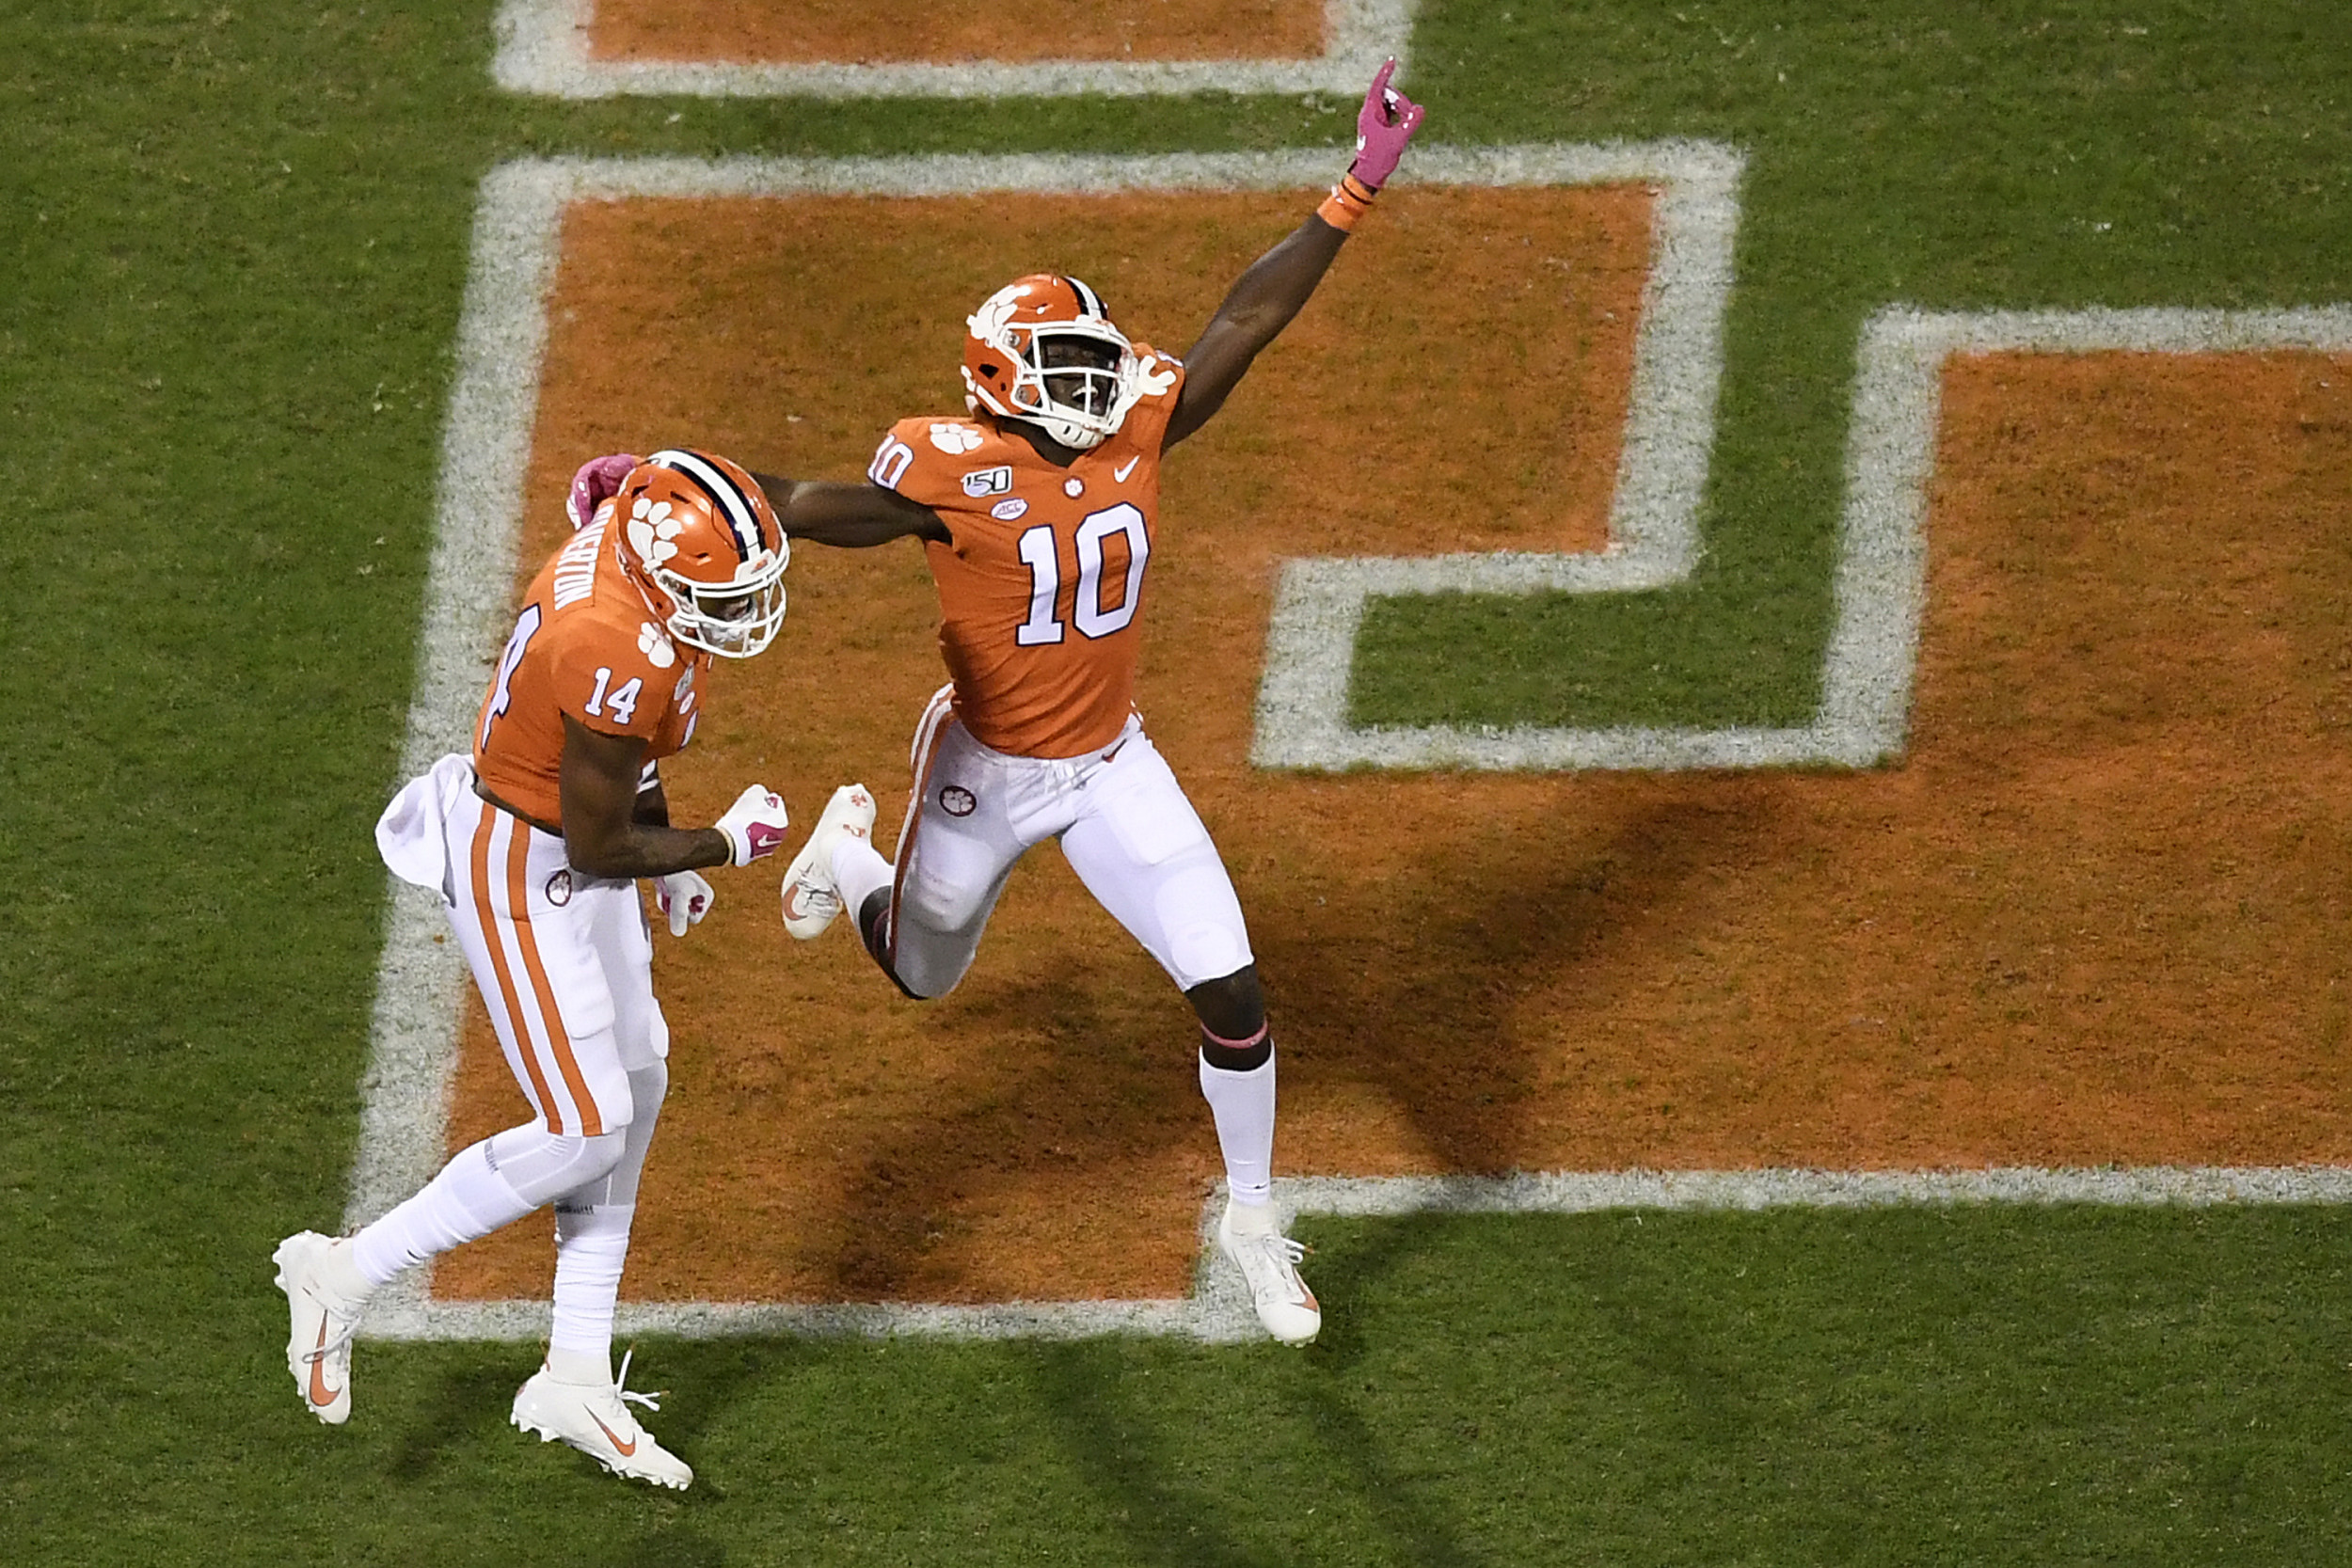 College Football 2019 Where To Watch Wofford Vs Clemson